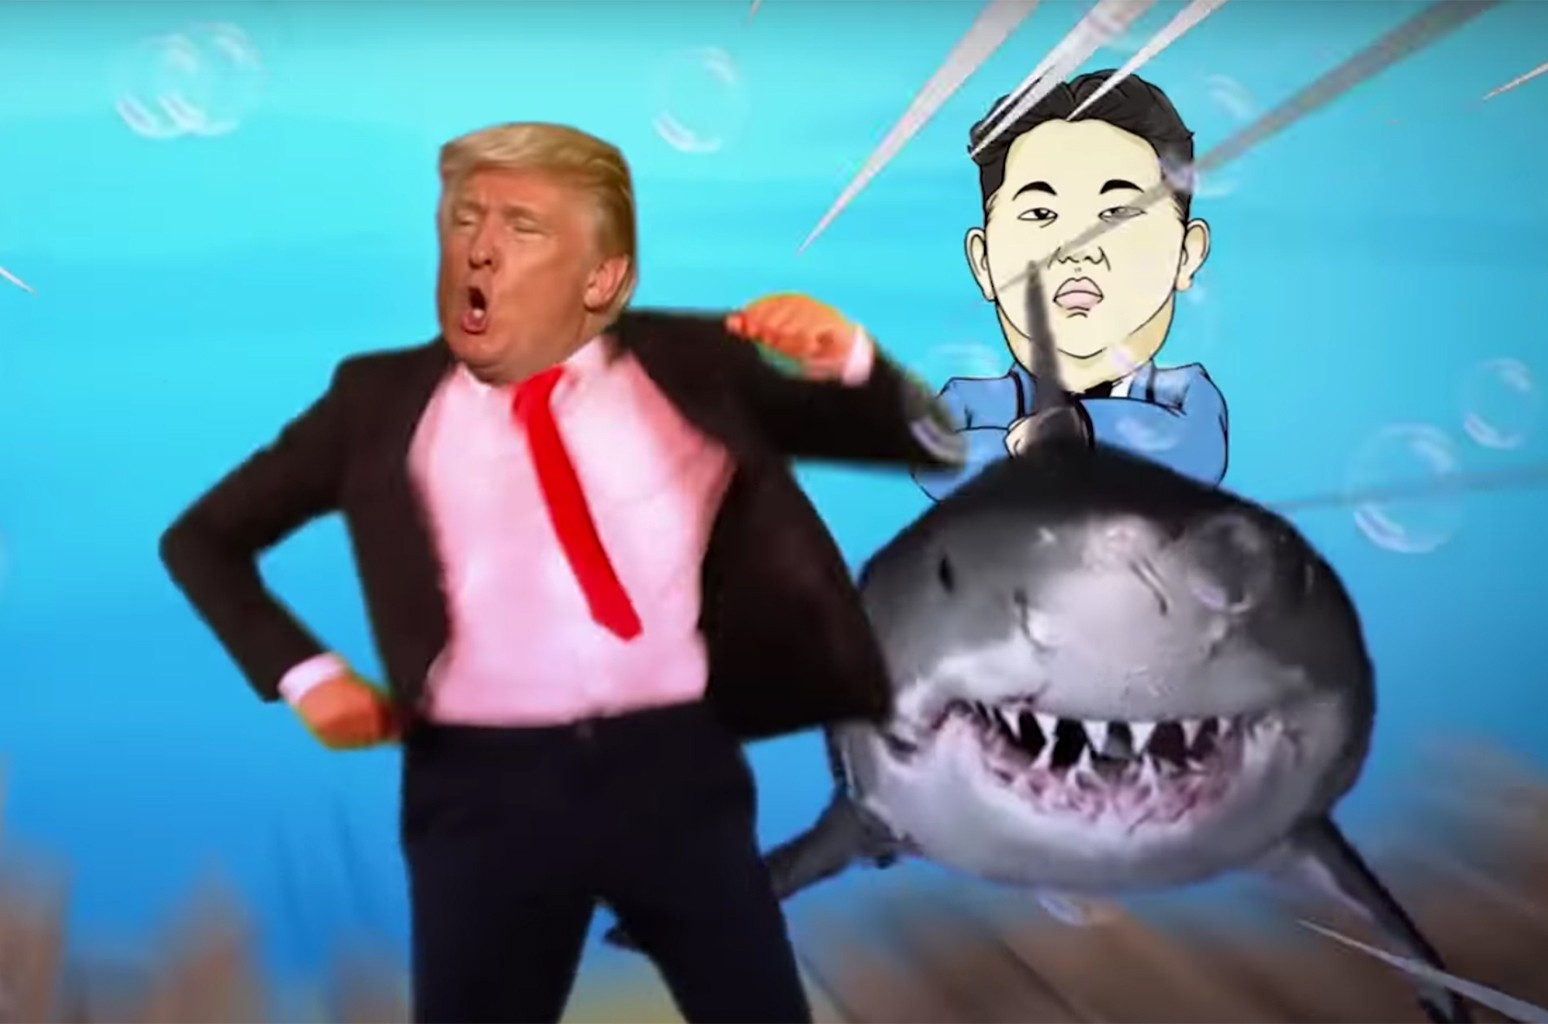 """Donald Trump sings 'Baby Shark'"" by Maestro Ziikos."